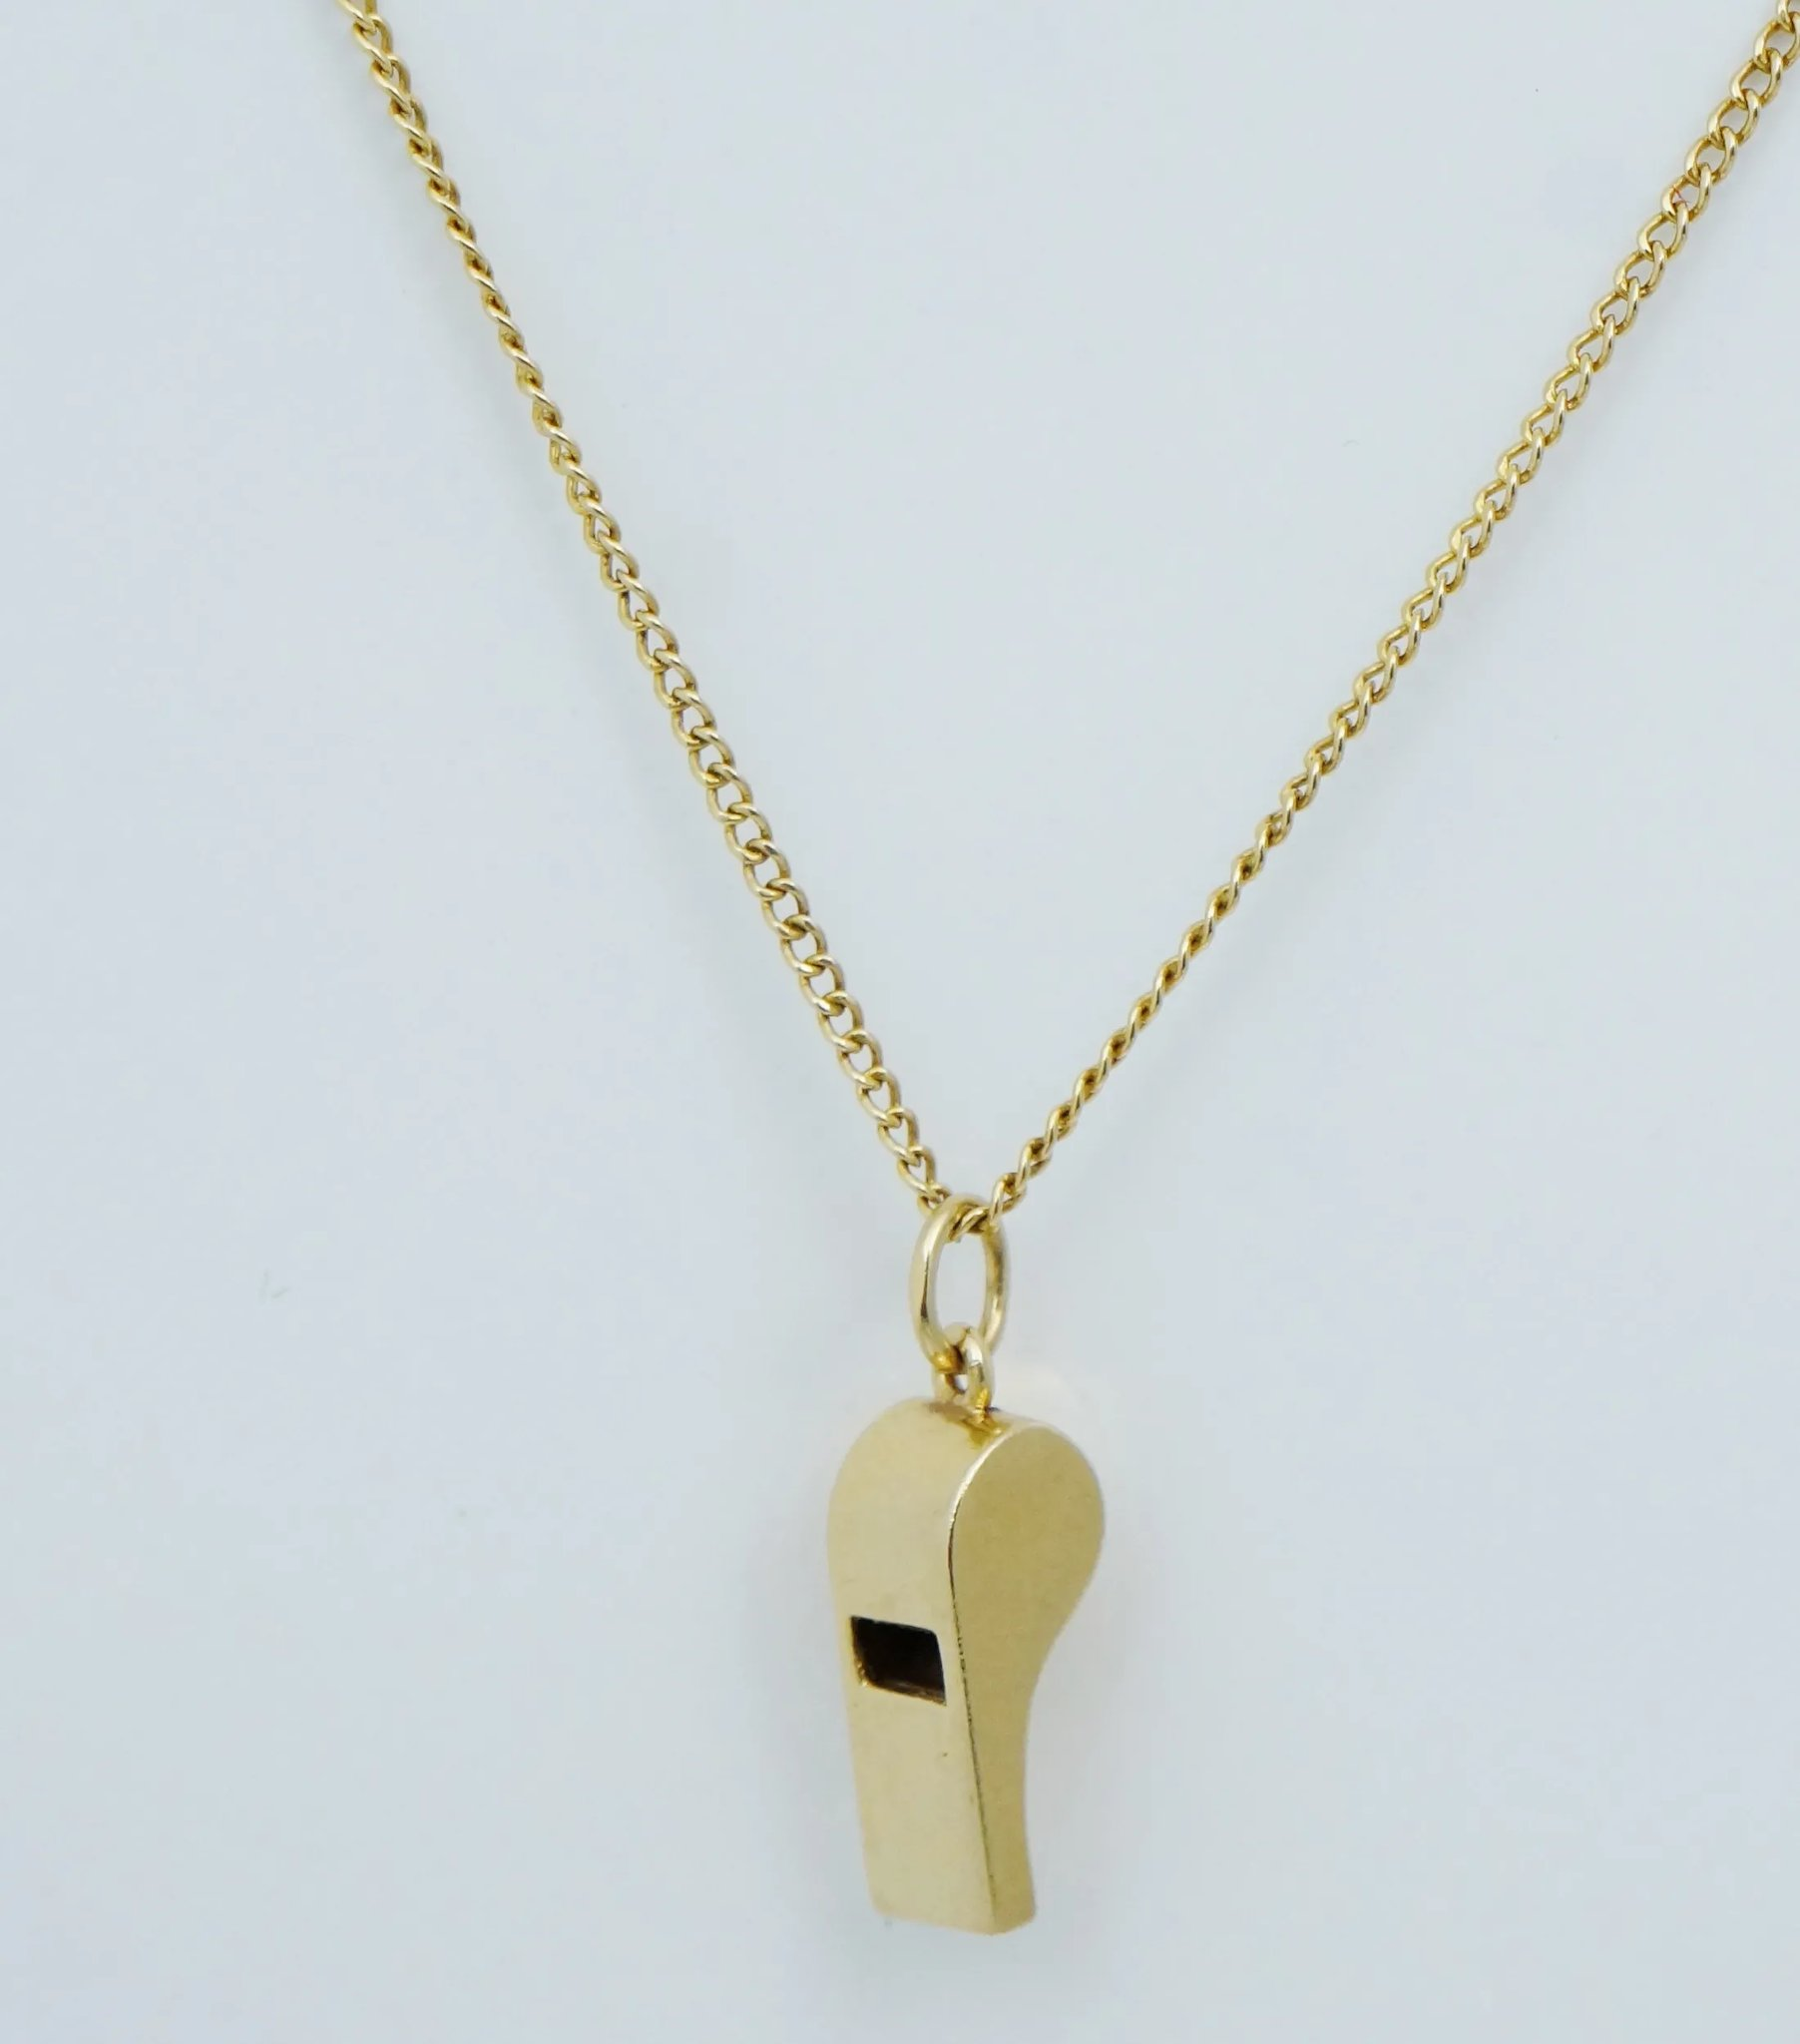 96d613e27 Tiffany & Co 14K Whistle Charm Pendant for Necklace Antique Yellow Gold  Vintage. Click to expand